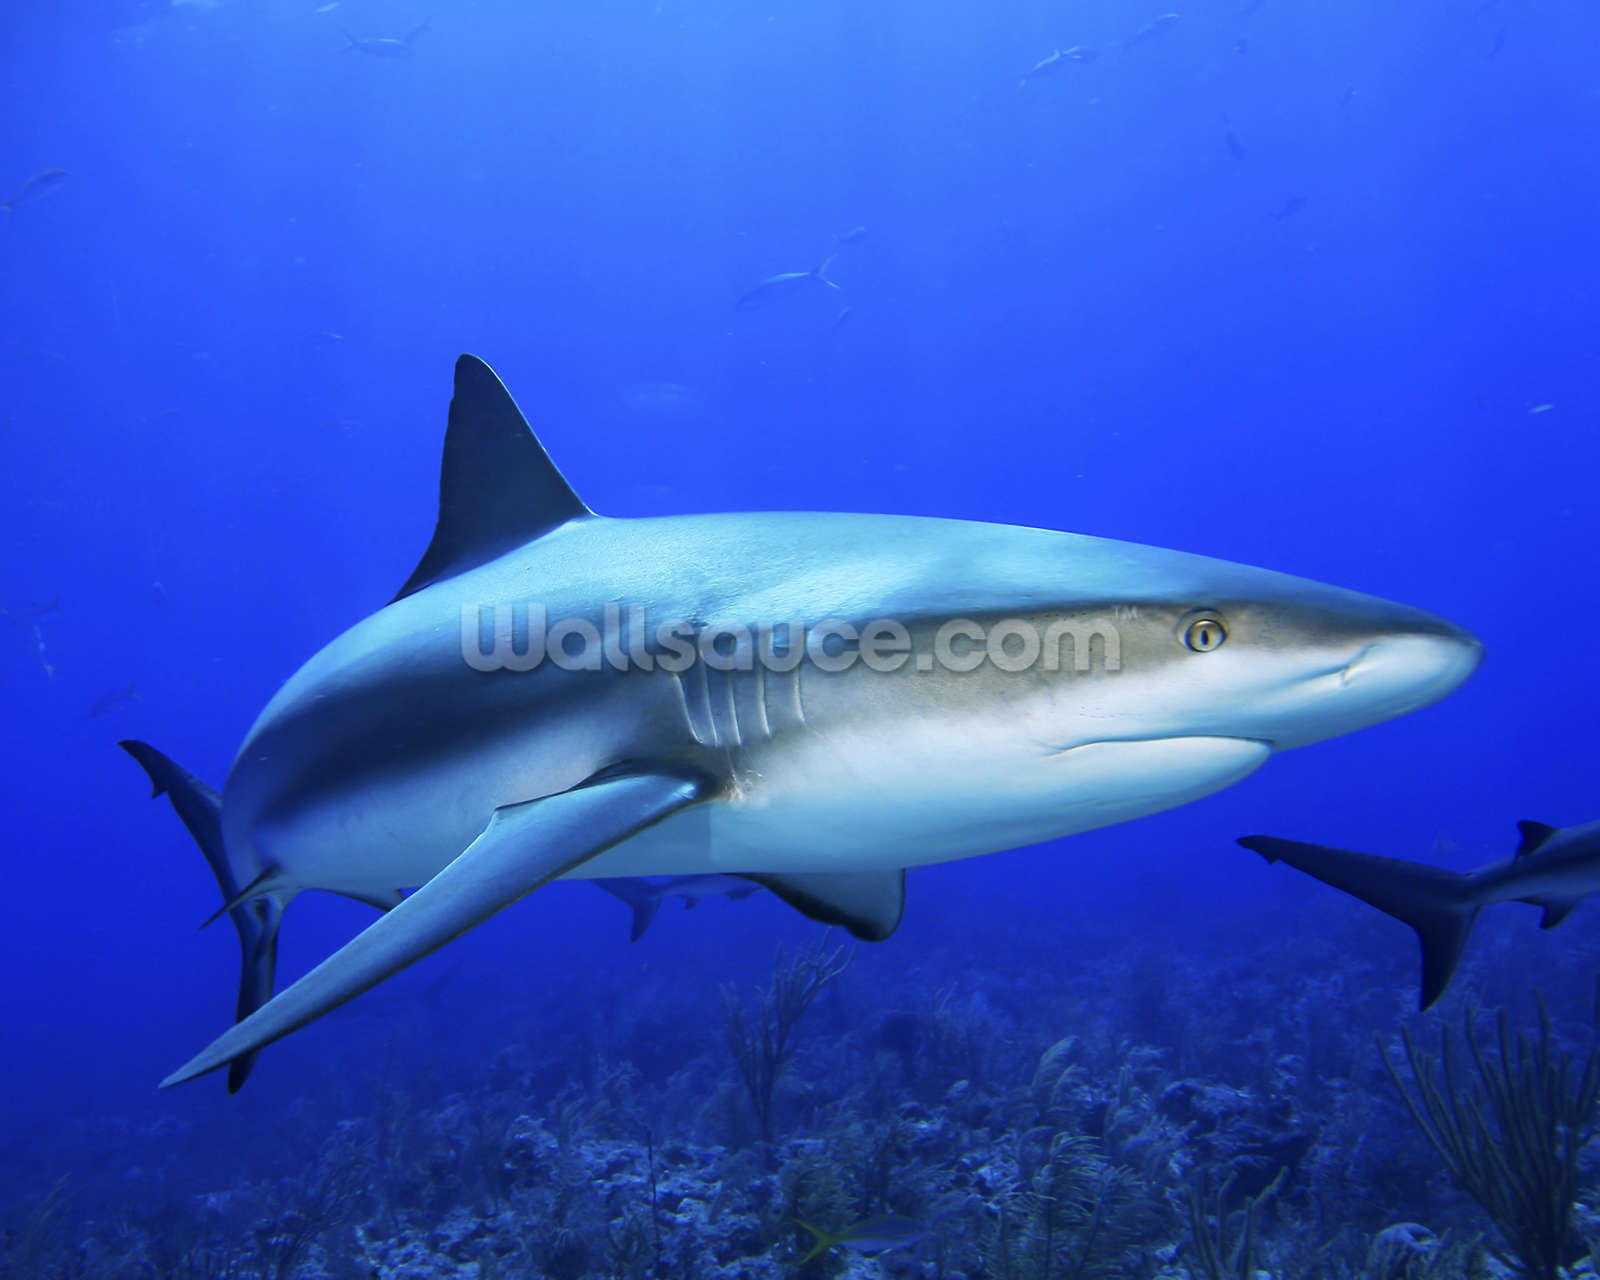 caribbean reef shark wall mural caribbean reef shark mural photo album 11296 mural photo album by edward luterio